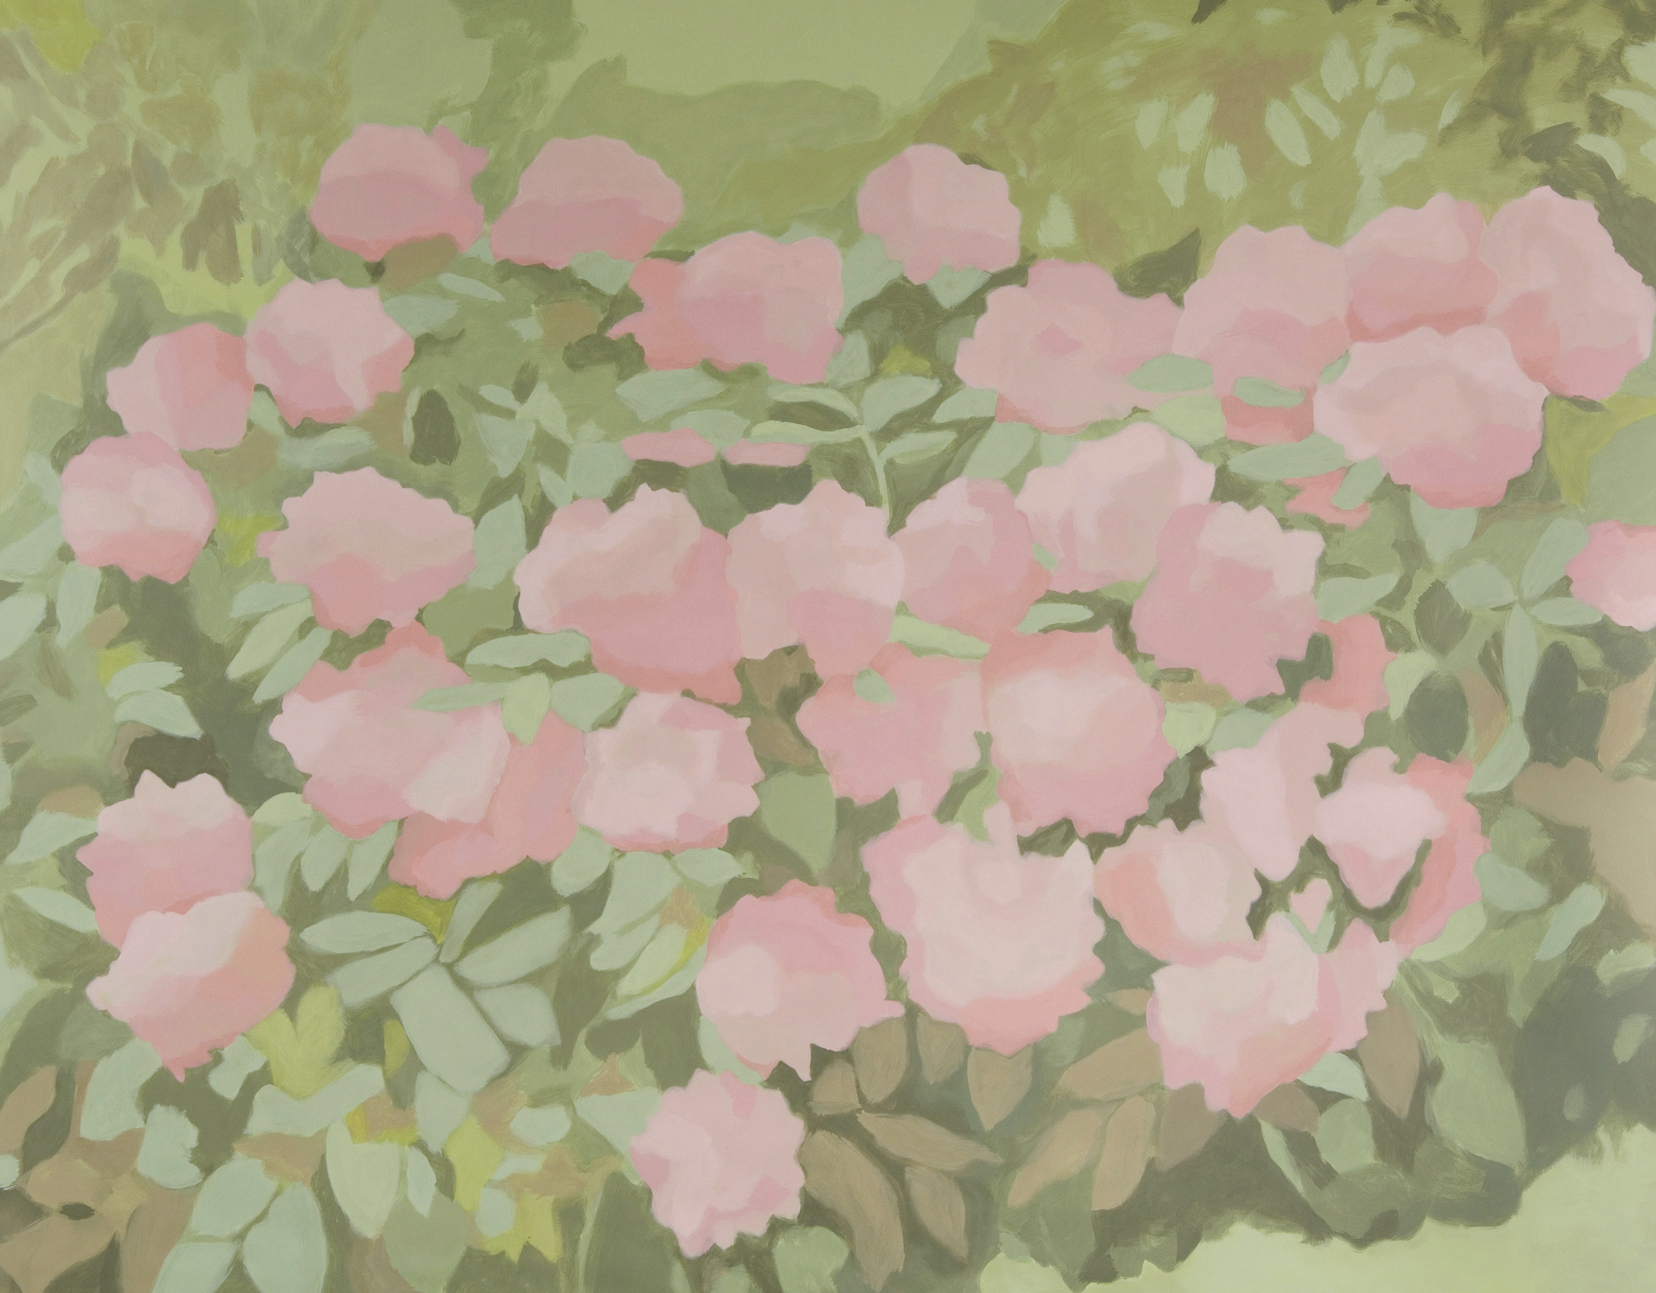 Pink Flower Bush, acrylic on canvas, 98 x 125 inches, 2007.